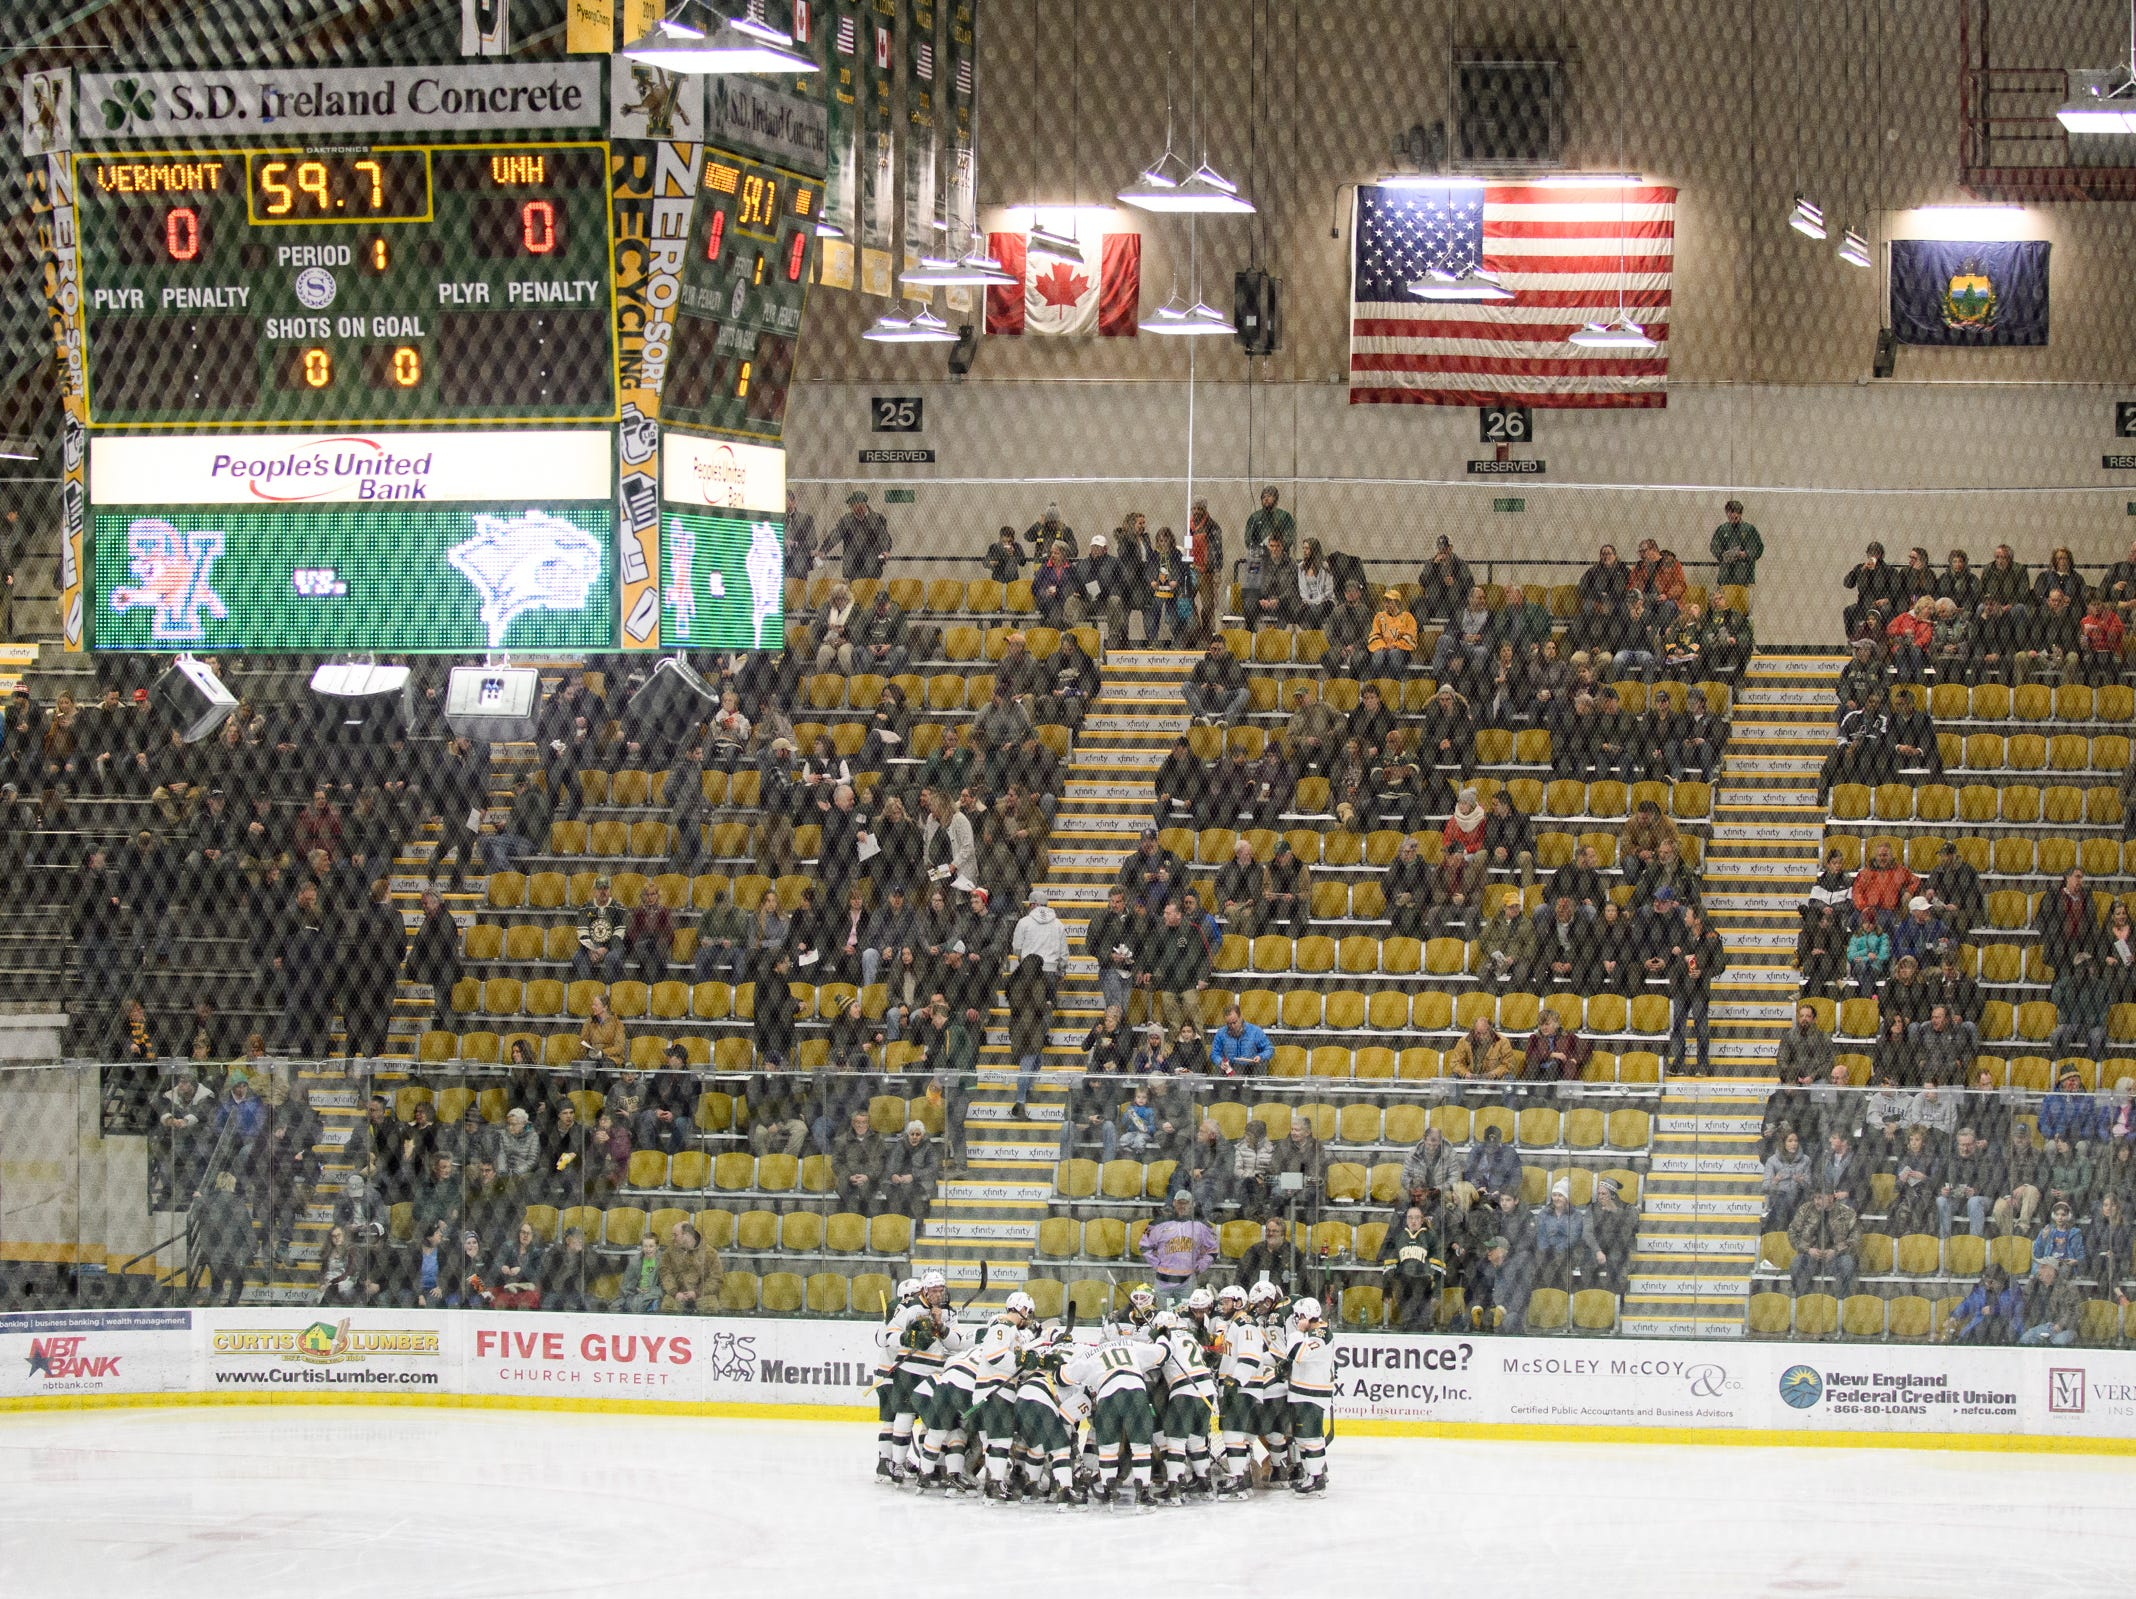 Vermont huddles together during the men's hockey game between the New Hampshire Wildcats and the Vermont Catamounts at Gutterson Field House on Friday night February 8, 2019 in Burlington, Vermont.